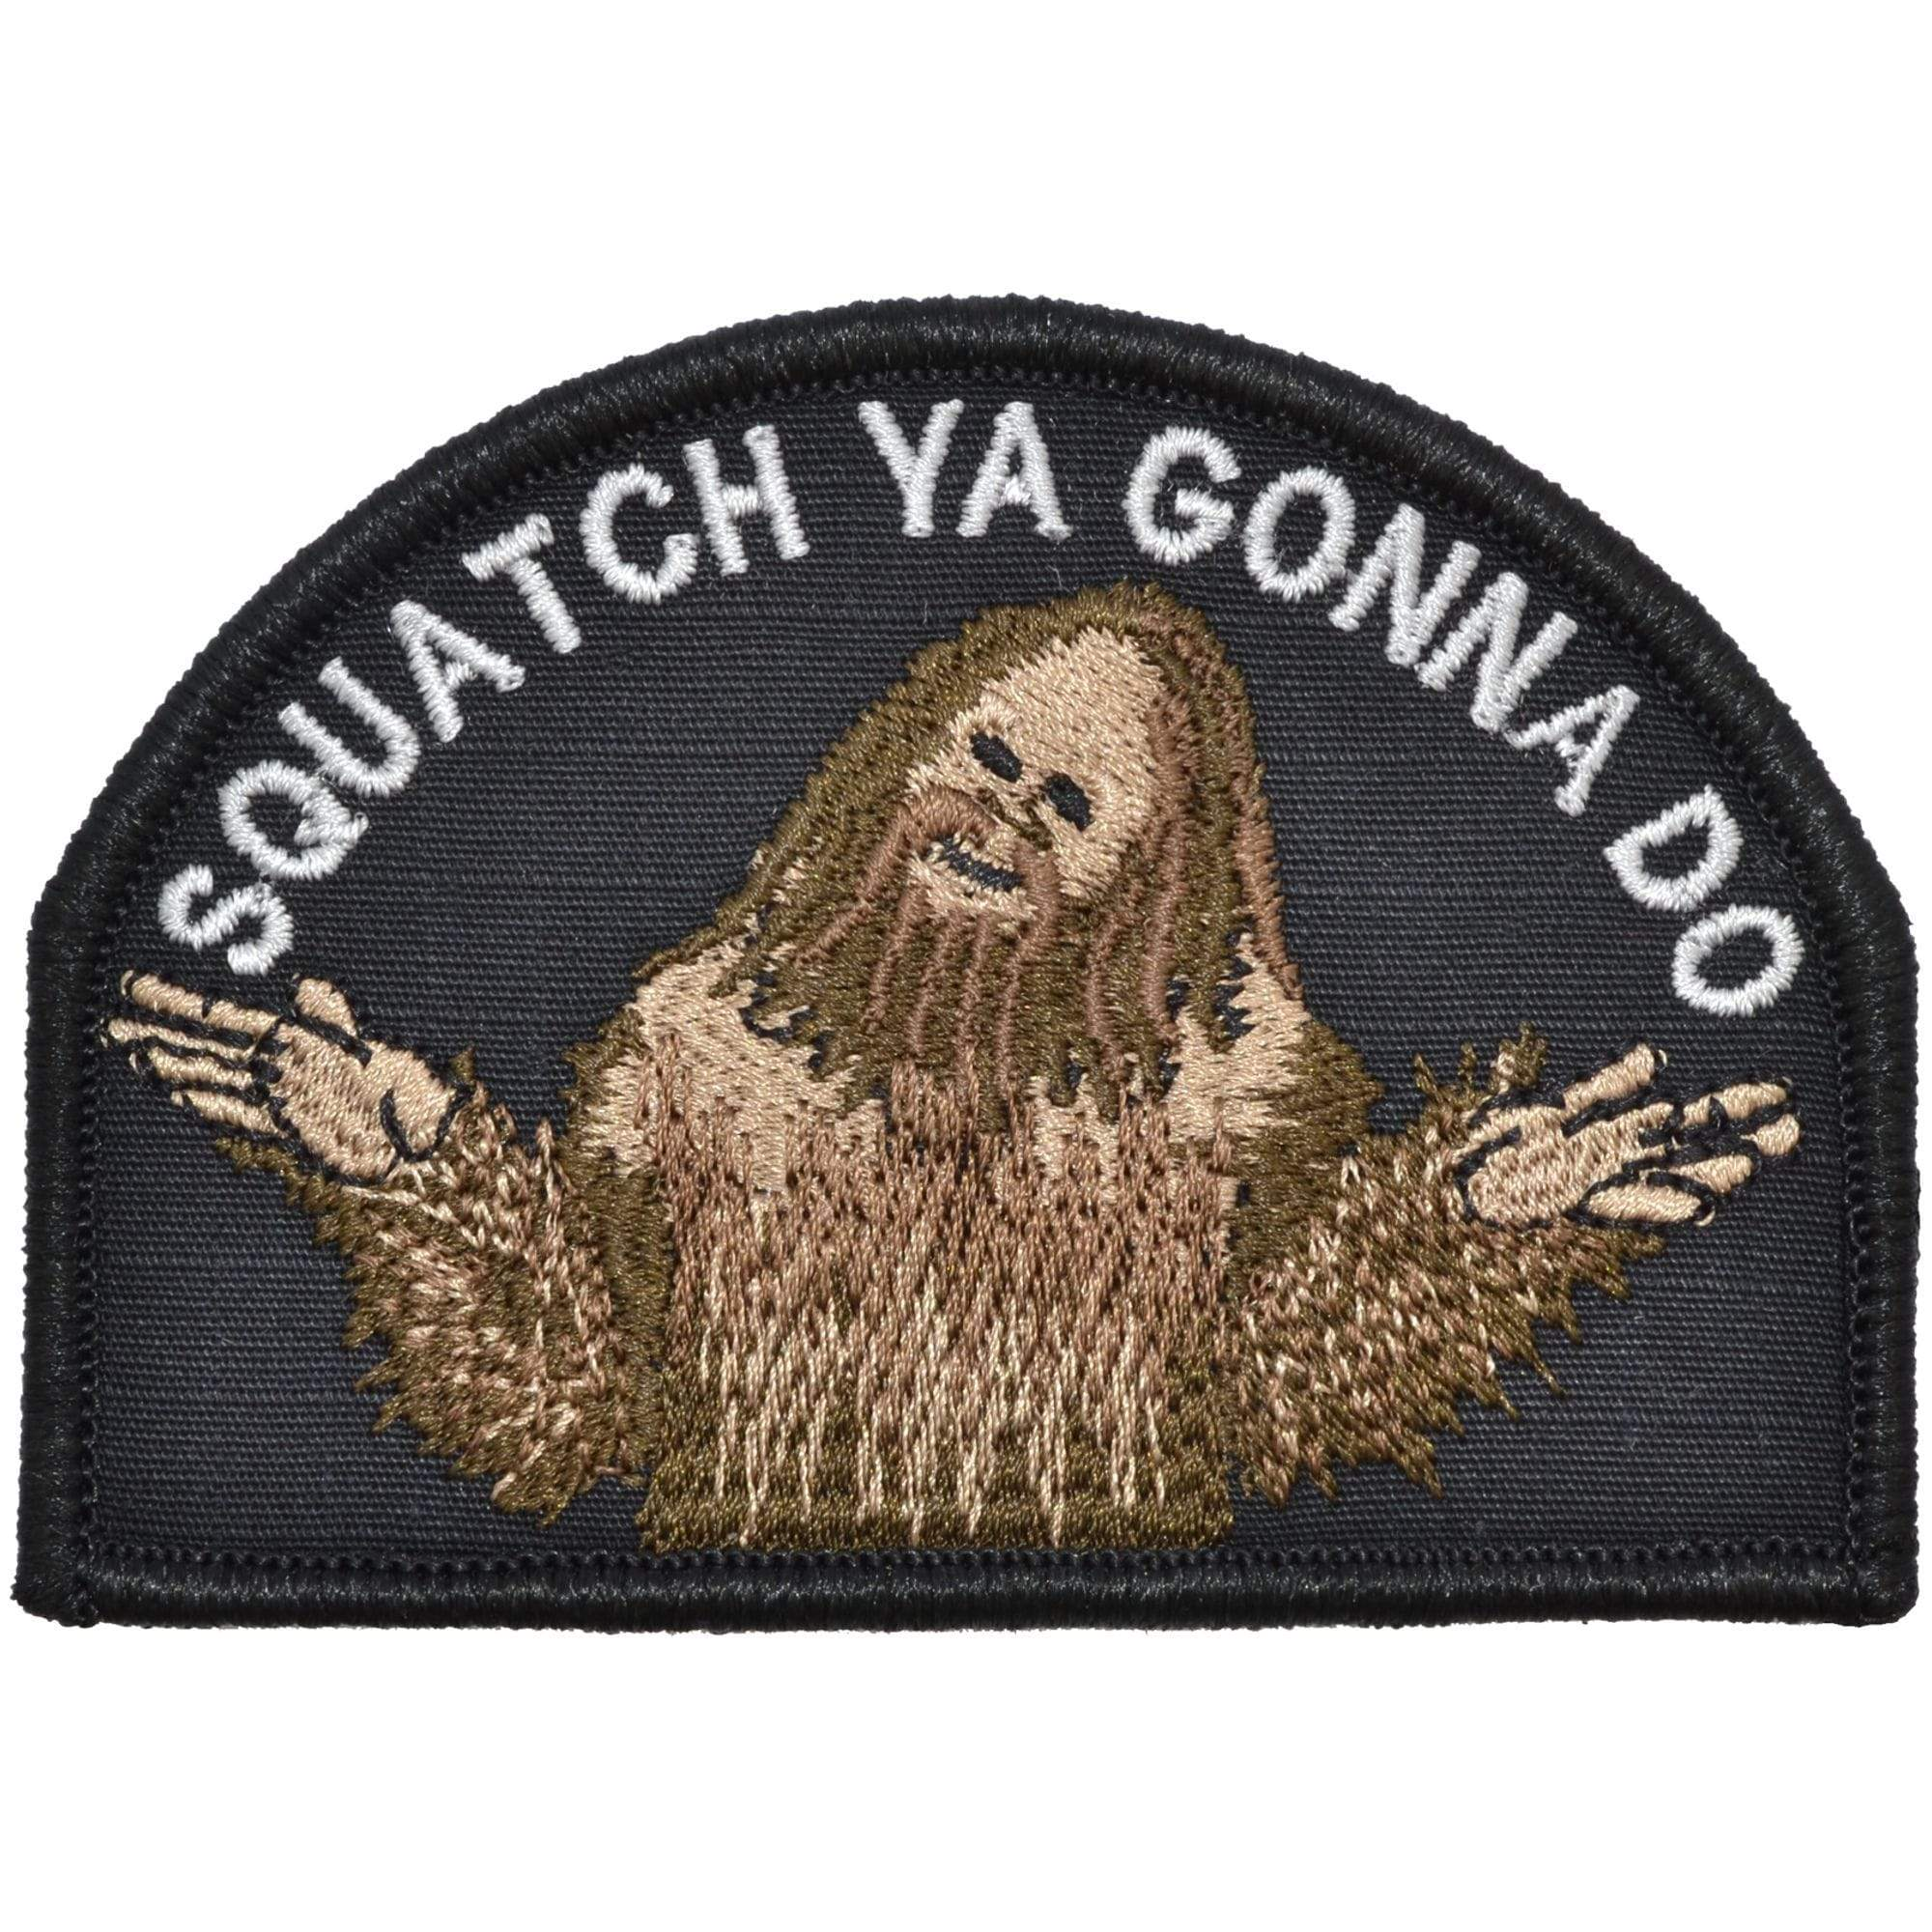 Tactical Gear Junkie Patches Black Squatch Ya Gonna Do - 2.75x4 Patch